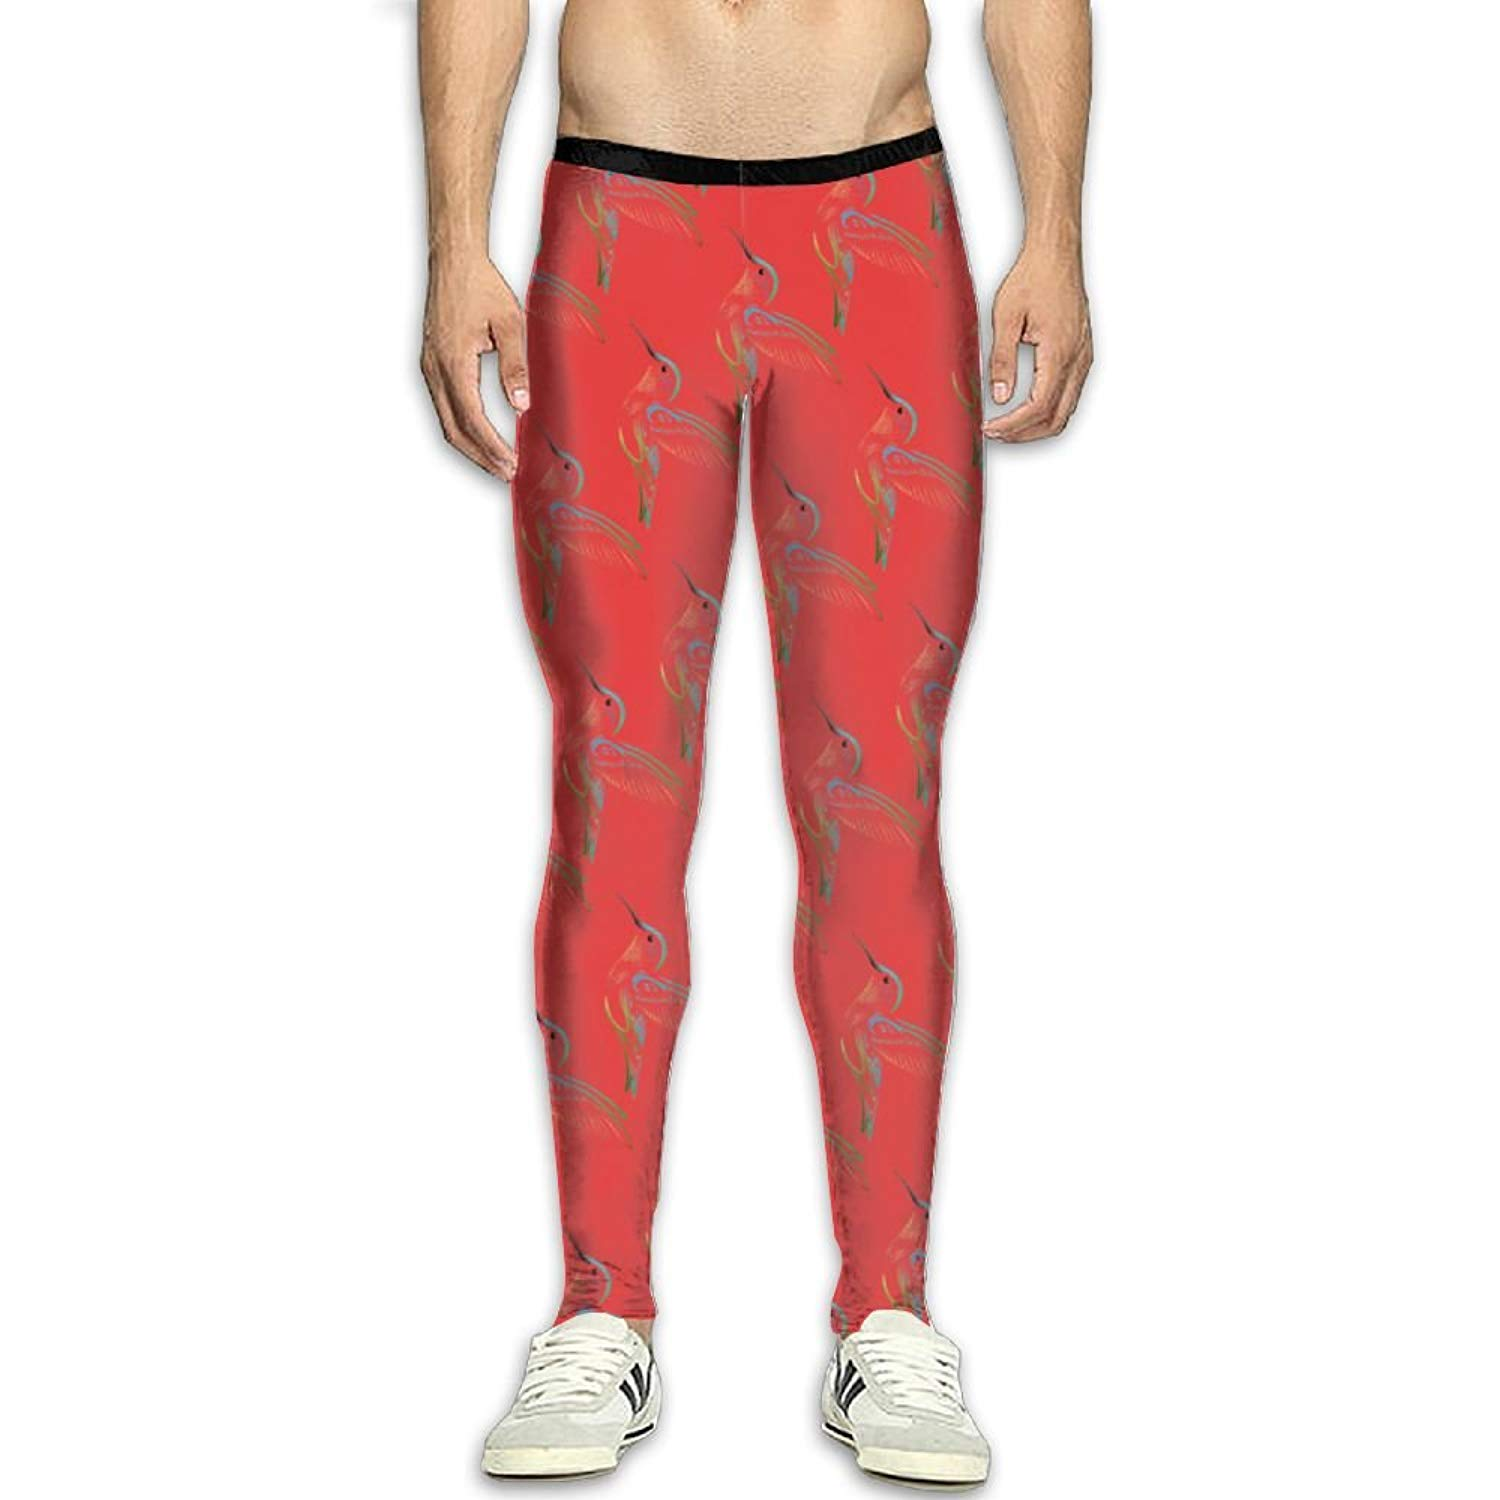 6e0a51a7b931c Get Quotations · LINpeiqiong Hummingbird Compression Pants/Running Tights  Running Tights Men Winter